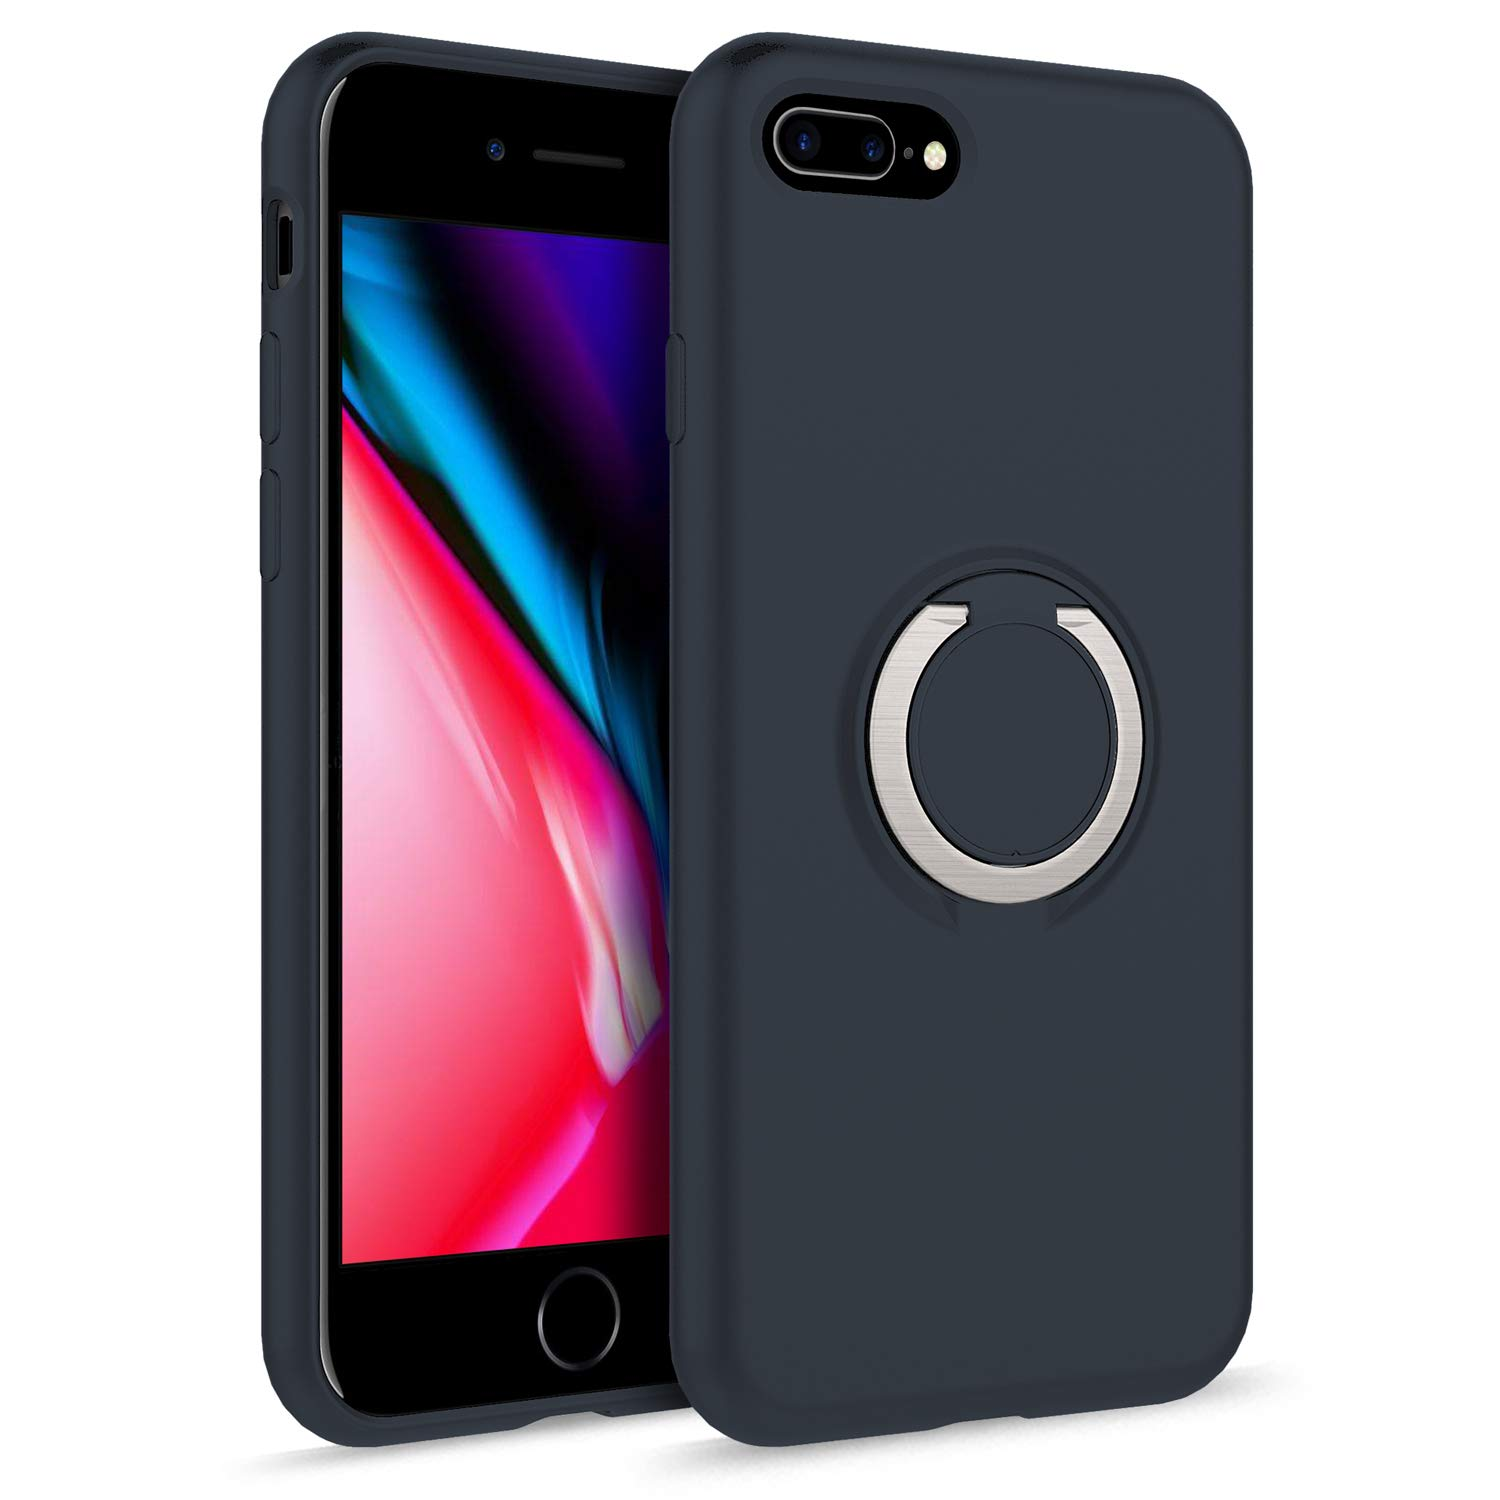 ZIZO Revolve Series Compatible with iPhone 8 Plus Case with Built in 360 Ring Holder Magnetic Mount and Kickstand iPhone 7 Plus Charcoal Blue